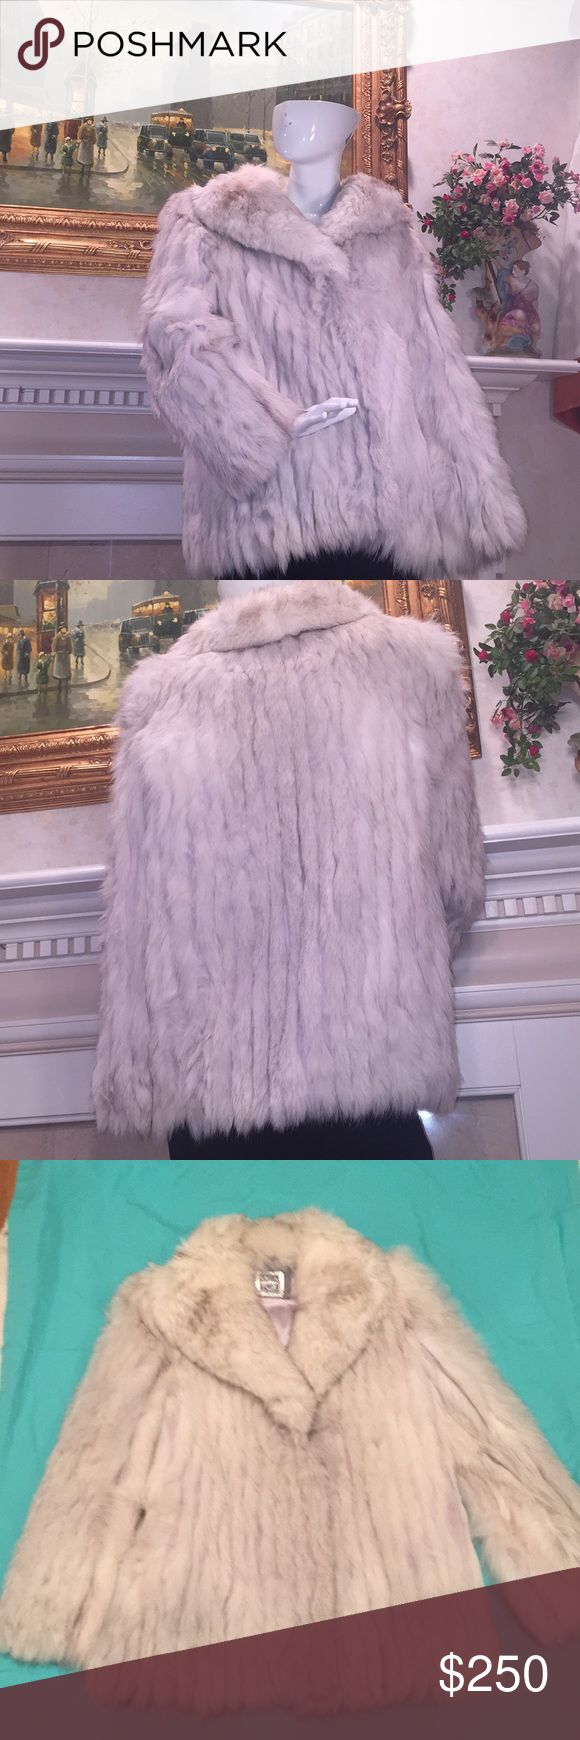 "Vintage SAGA silver fox fur coat EUC Just in time for winter this fox fur coat is stylish without being ostentatious. Soft and warm with two pockets it closes with ""snap hooks"" typical of fur coats. The collar is exceptionally soft.  Purchased in Seattle and only worn for special occasions. Tag says large see pics for measurements Saga Furs Jackets & Coats"